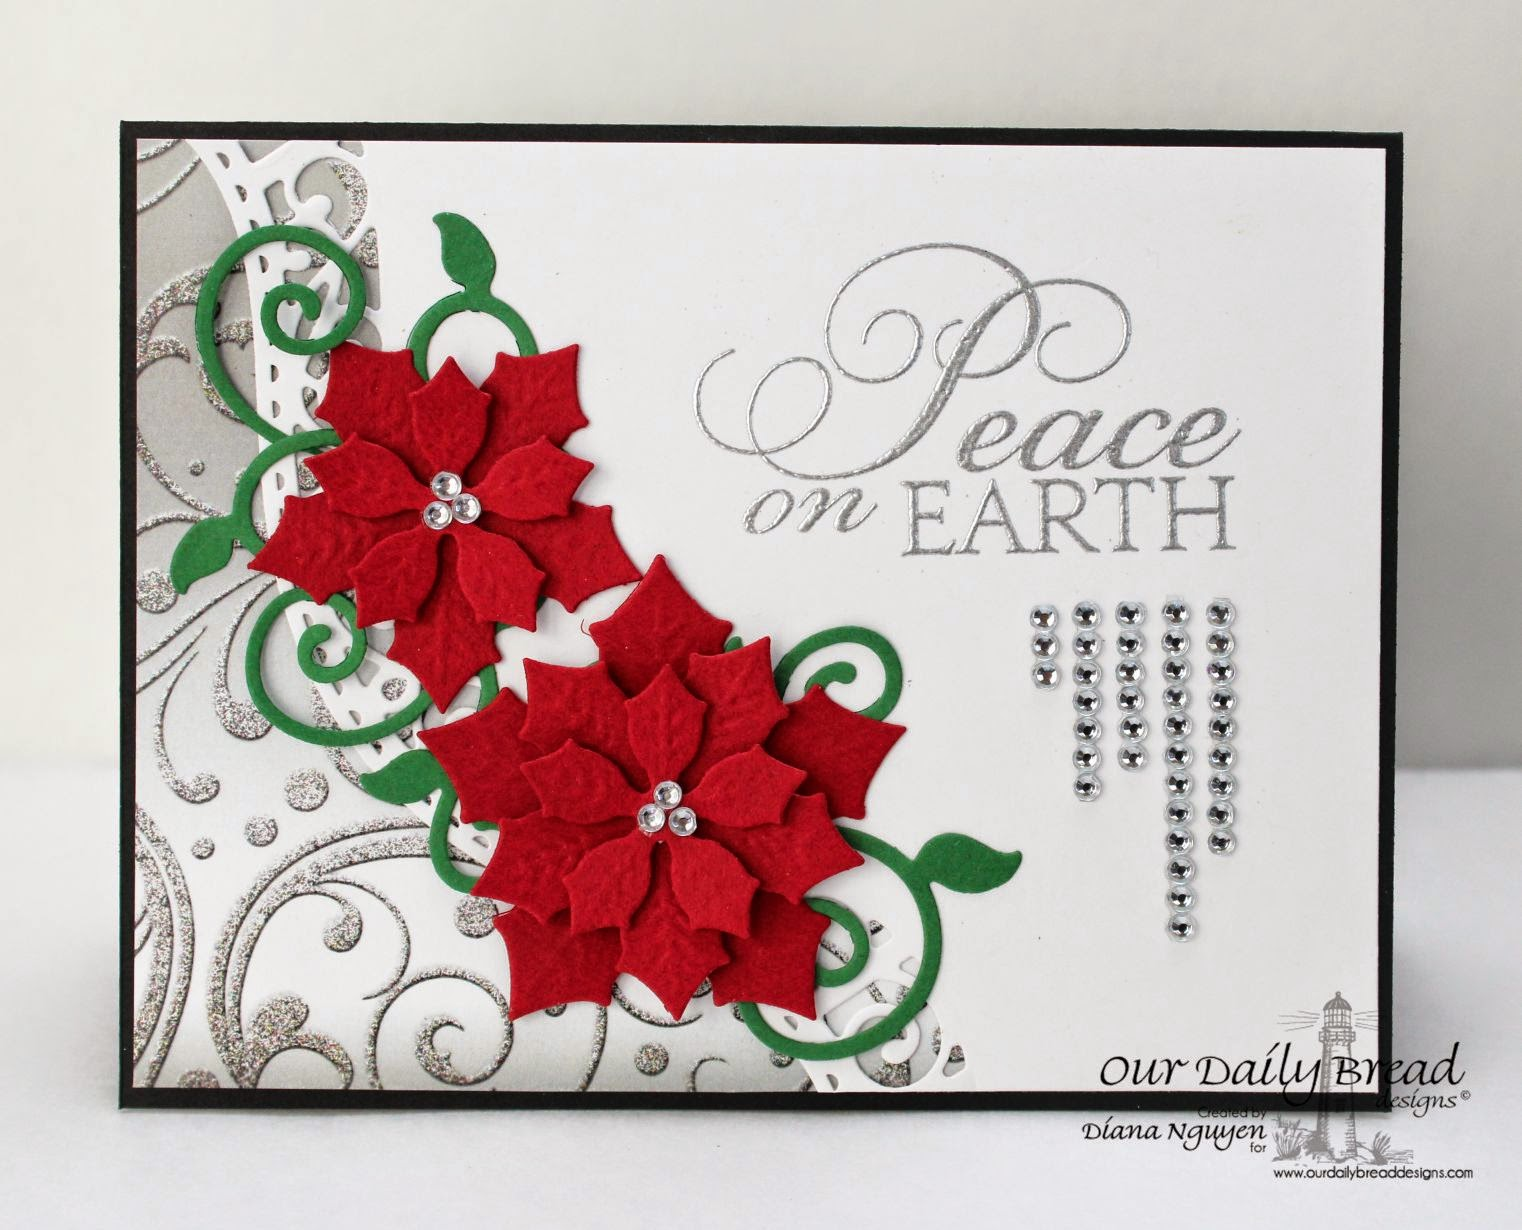 Diana Nguyen, Our Daily Bread esigns, poinsettia, christmas